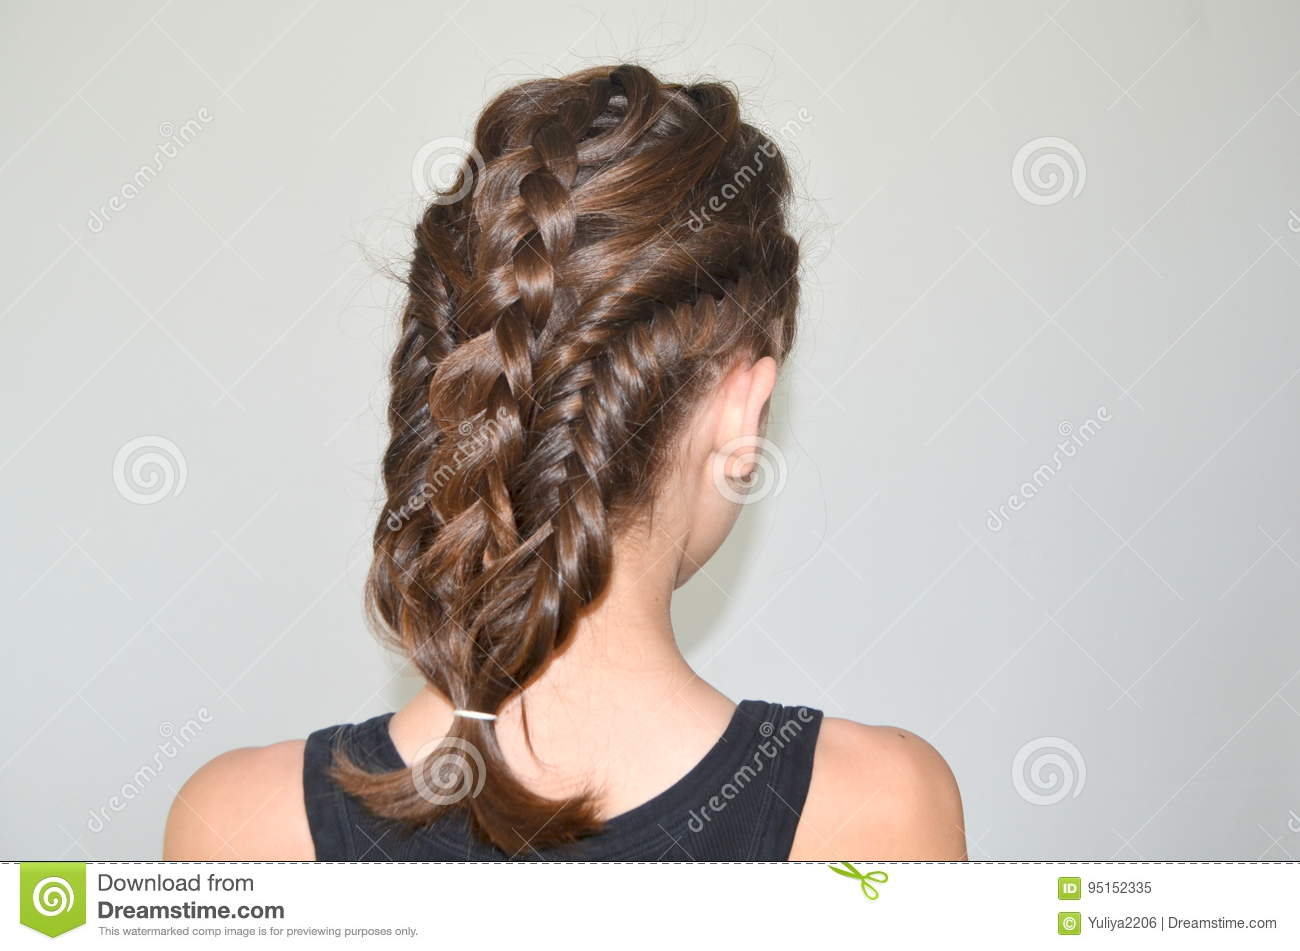 hairstyle braiding on medium length stock image - image of portrait